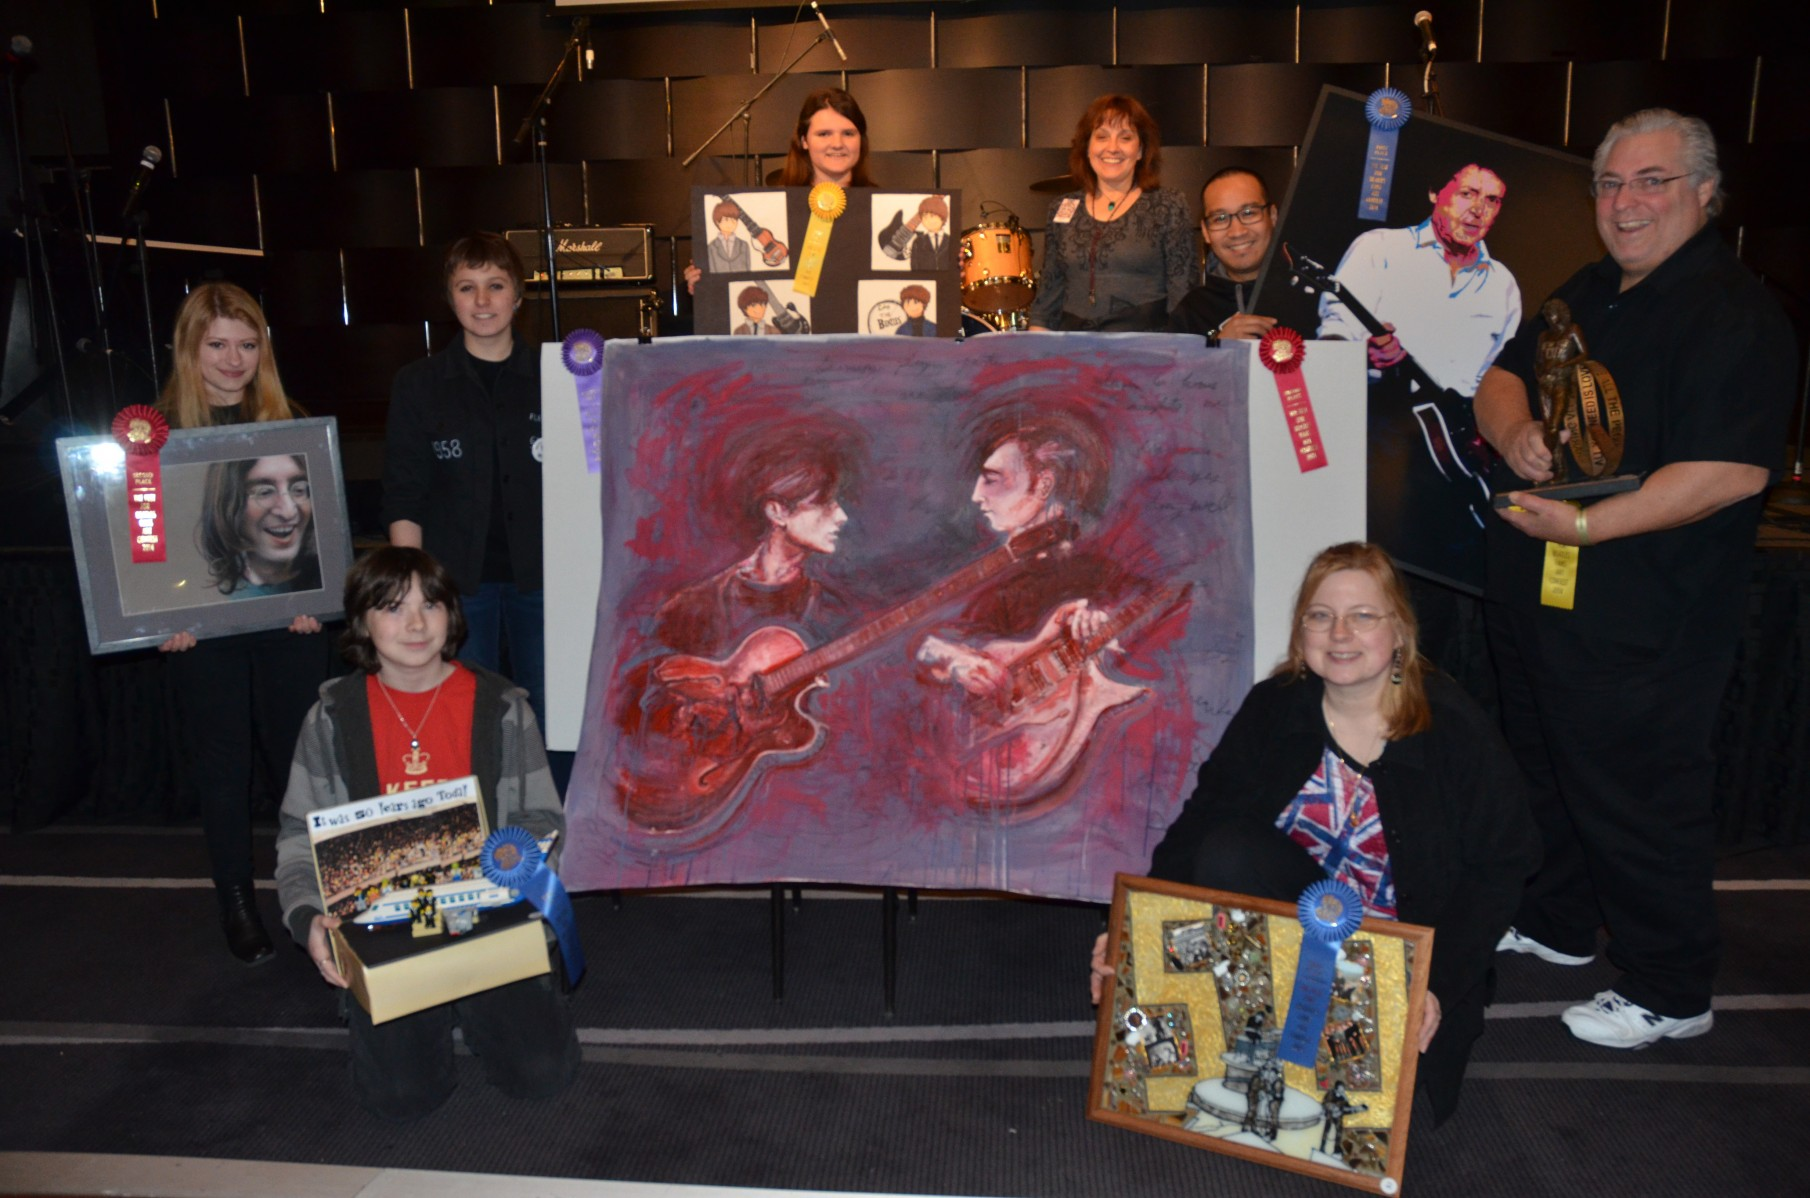 All of the Fest art contest winners pose in the Cavern.